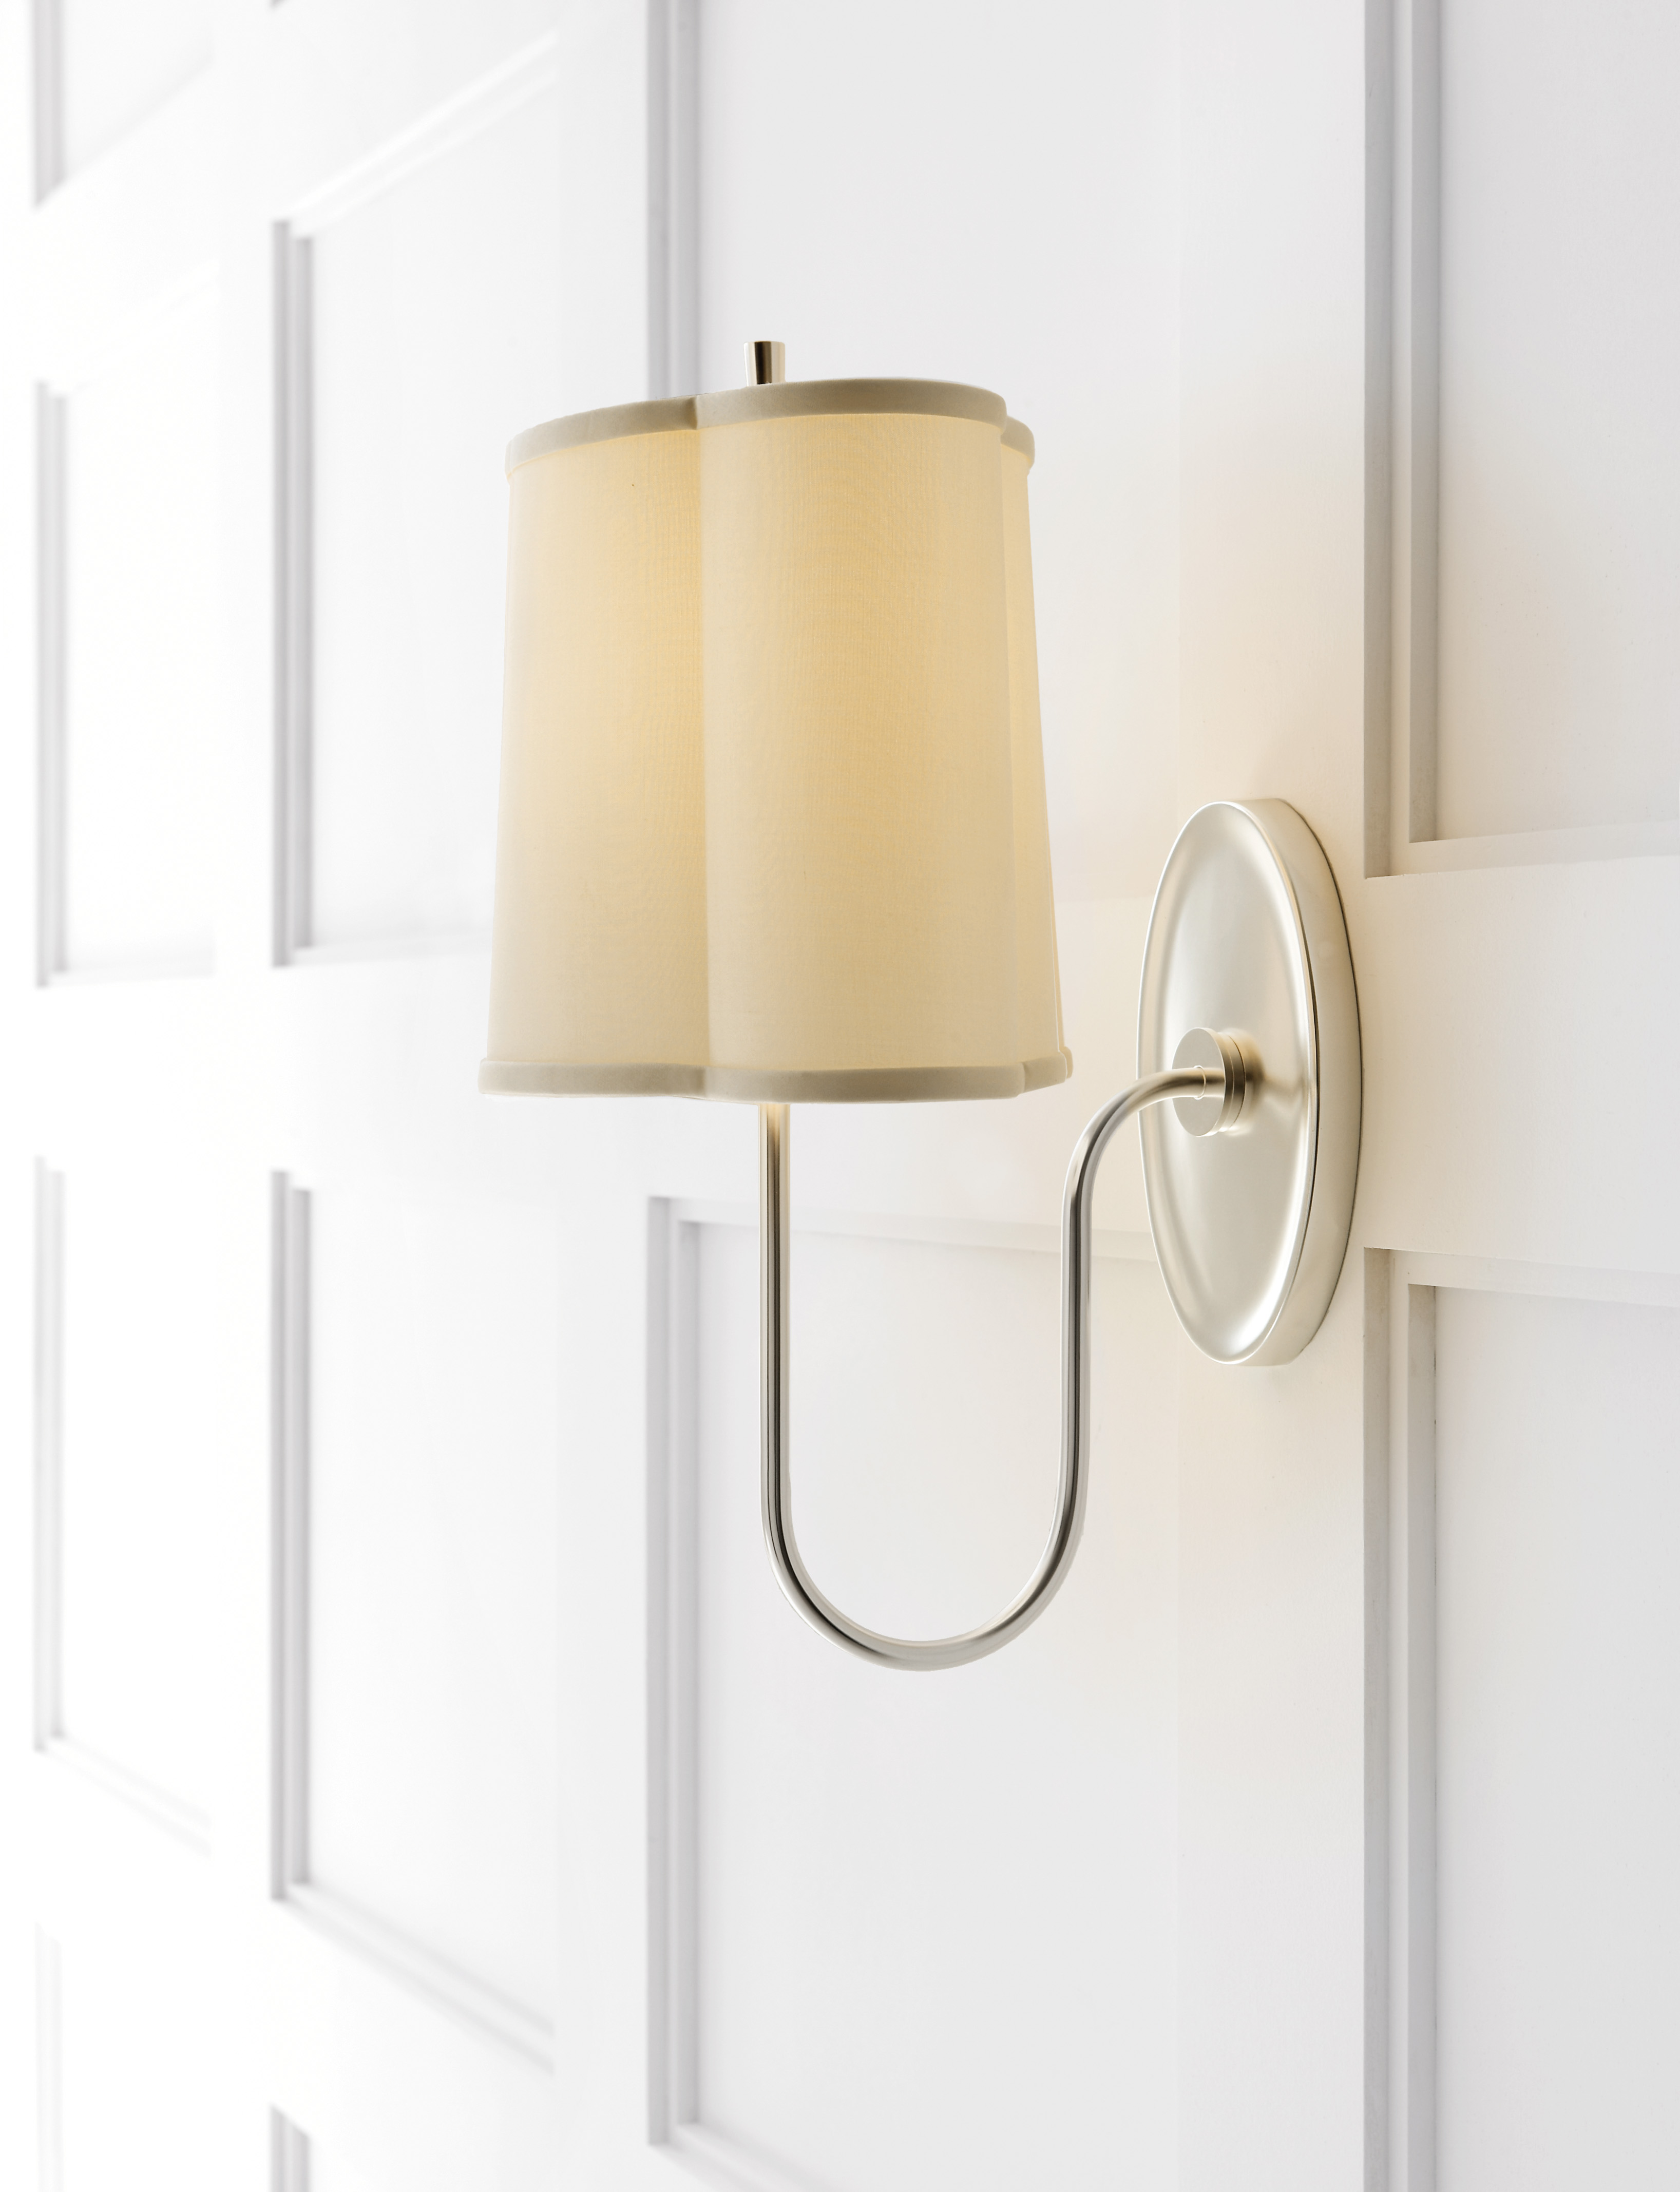 bruck collection simple image brilliant lighting charleston comfort visual blog savannah nyc showroom sconce wonderful sc top ga houston spade in light circa pendant photos kate with fixtures